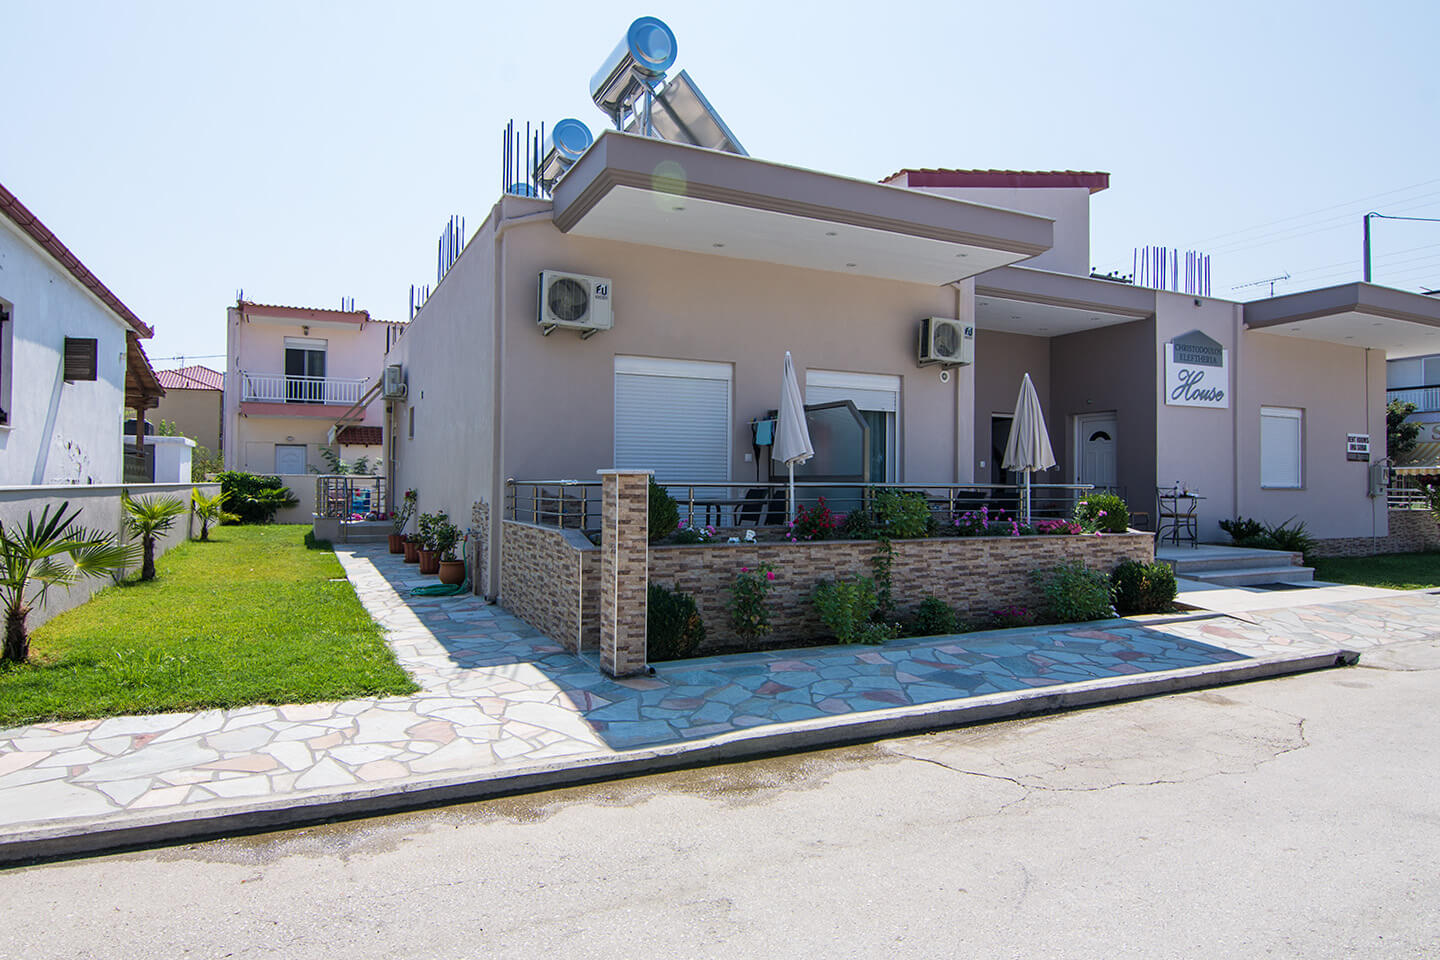 Christodoulos Eleftheria House Apartment 005 - Nea Vrasna - Rent Rooms - Apartments - Hotel